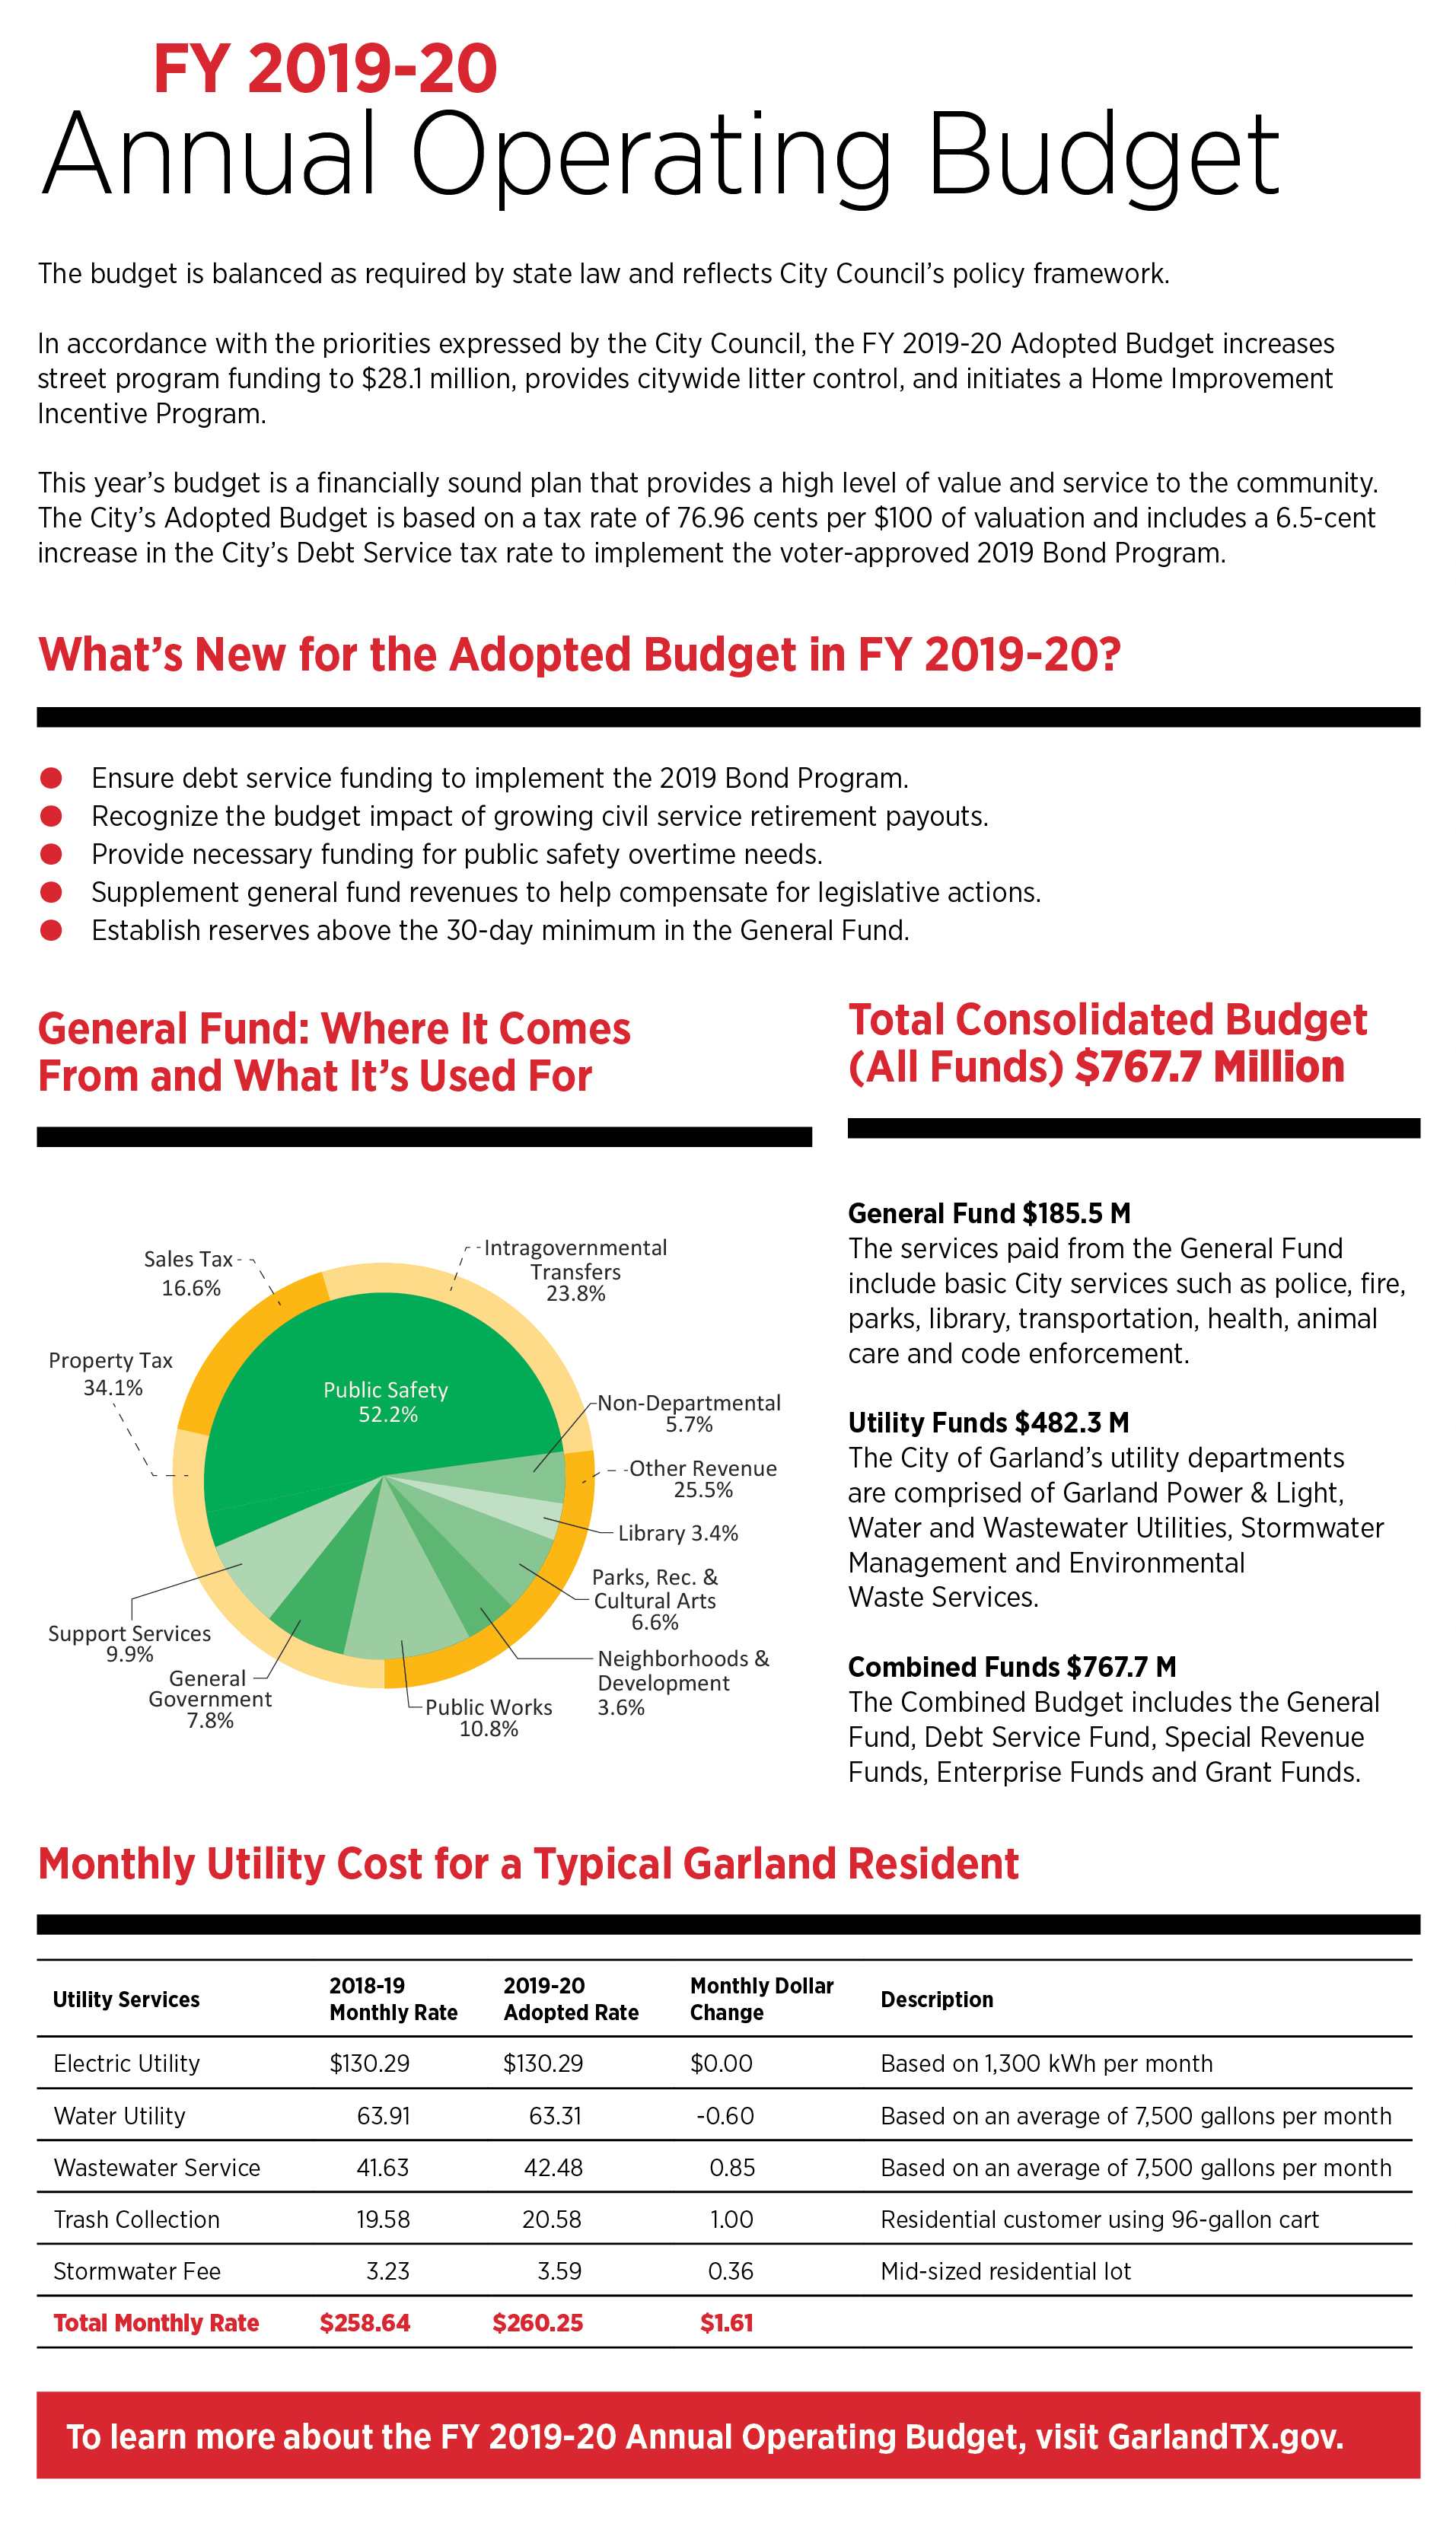 Click link below for readable .PDF of the 2019 - 2020 Annual Operating Budget Summary